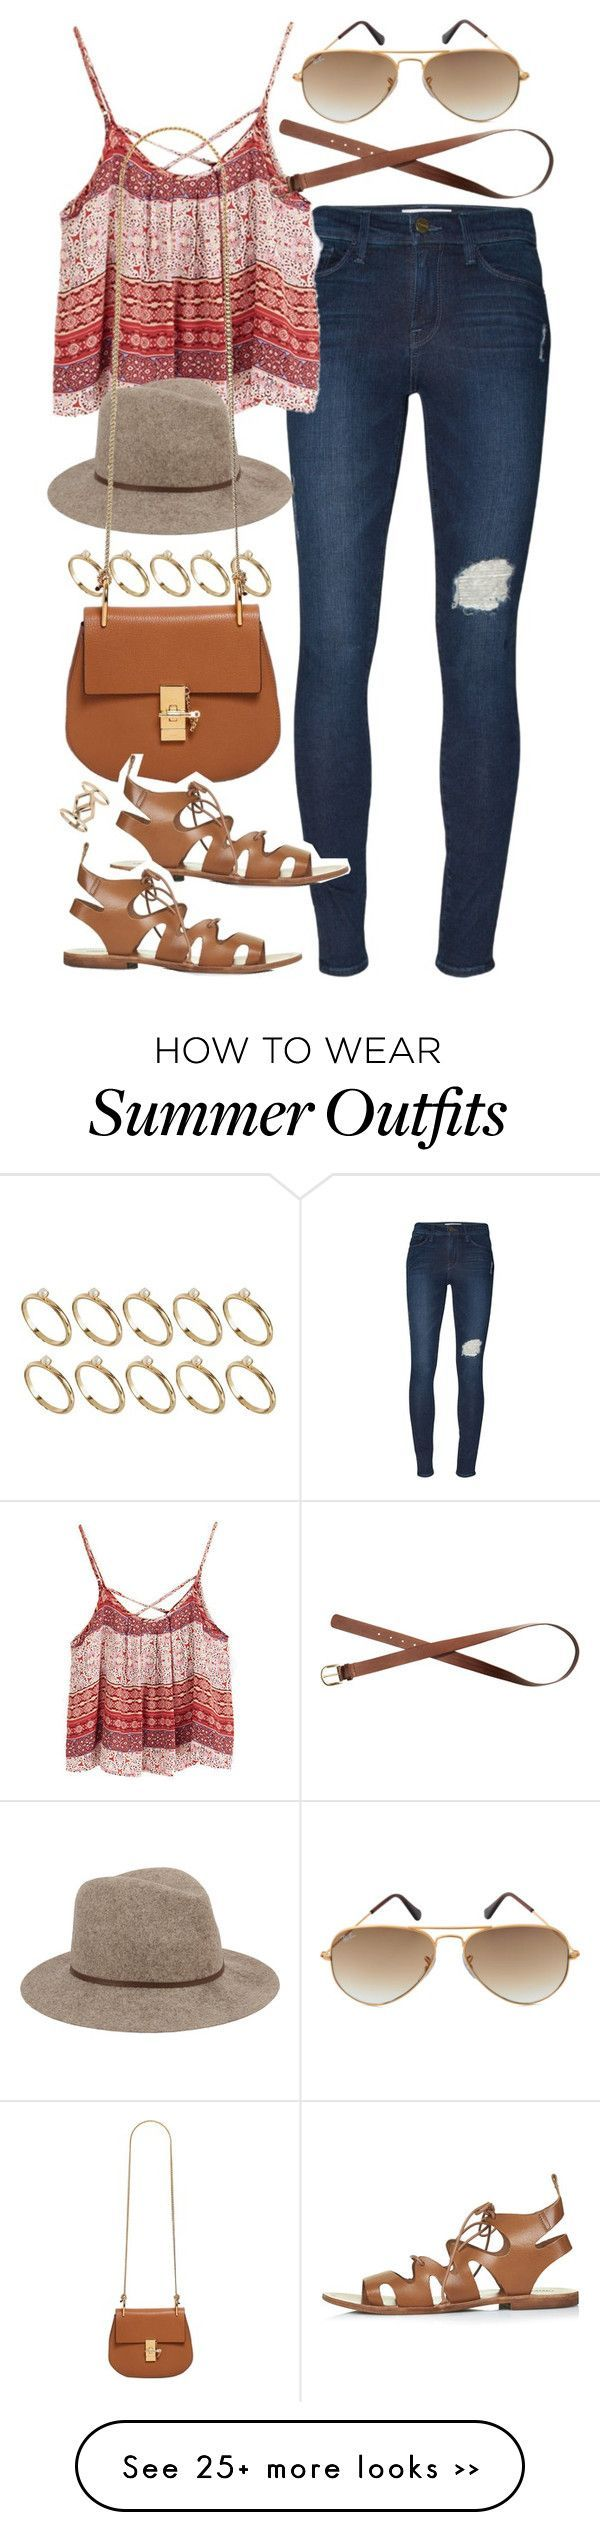 How to summer wear outfits